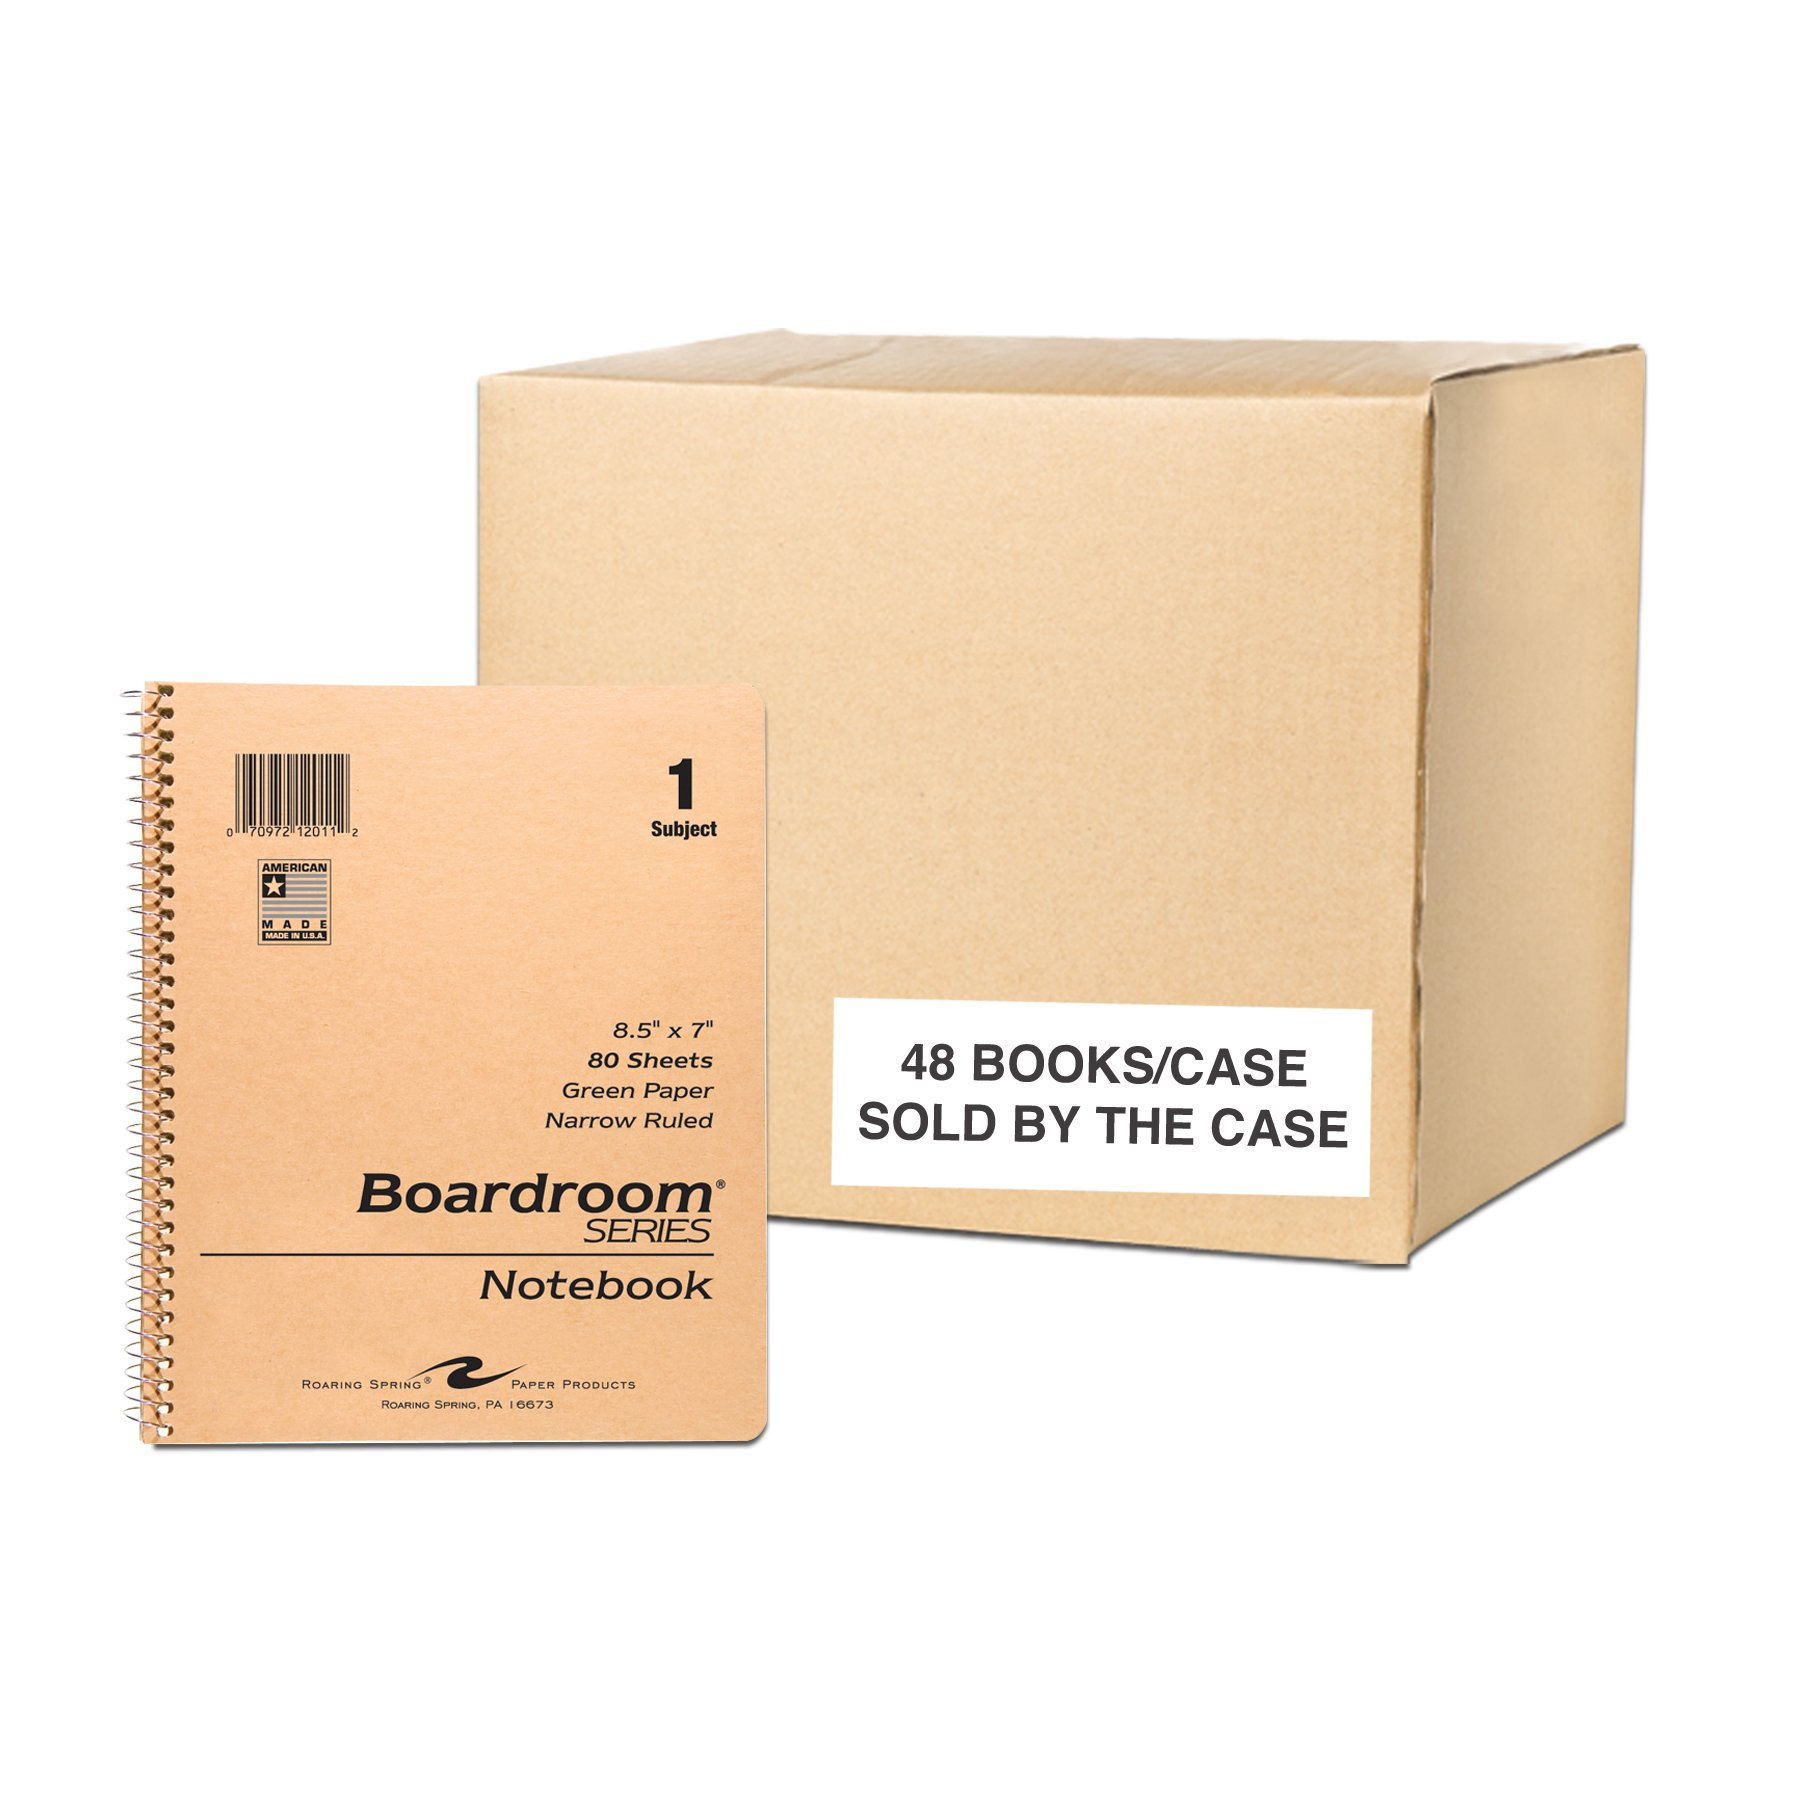 Case of 48 One Subject Wirebound Notebooks, 8.5''x7'', 80 sheets 15# Green Paper, Brown Kraft Covers, Narrow Ruled